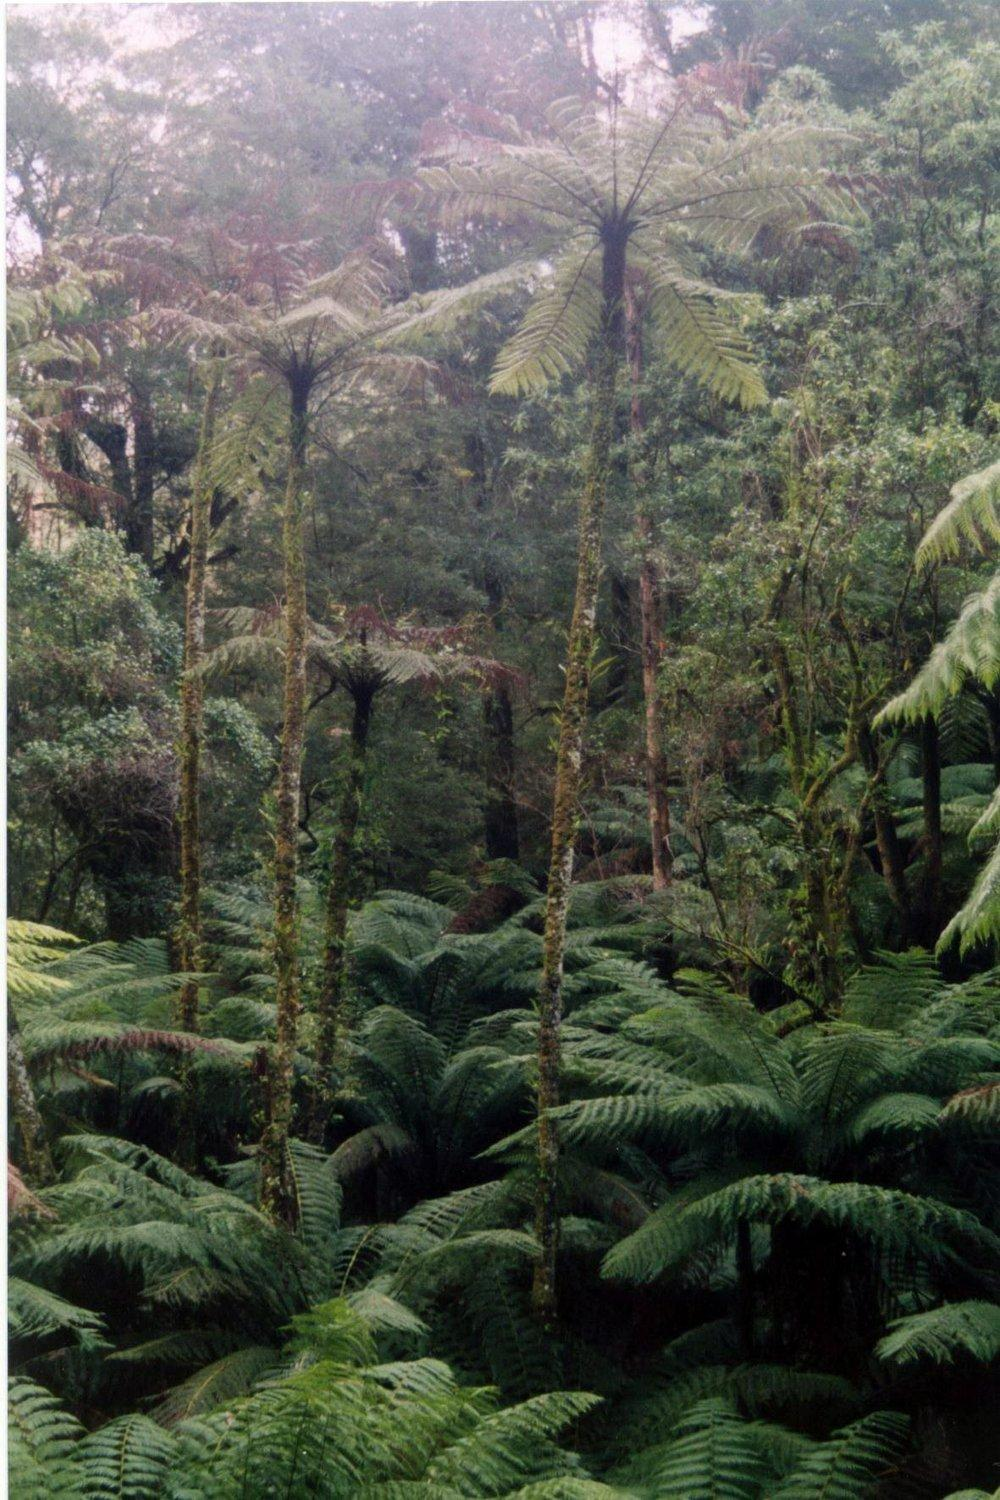 Photo of Slender Tree Fern (Alsophila cunninghamii) uploaded by DaylilySLP